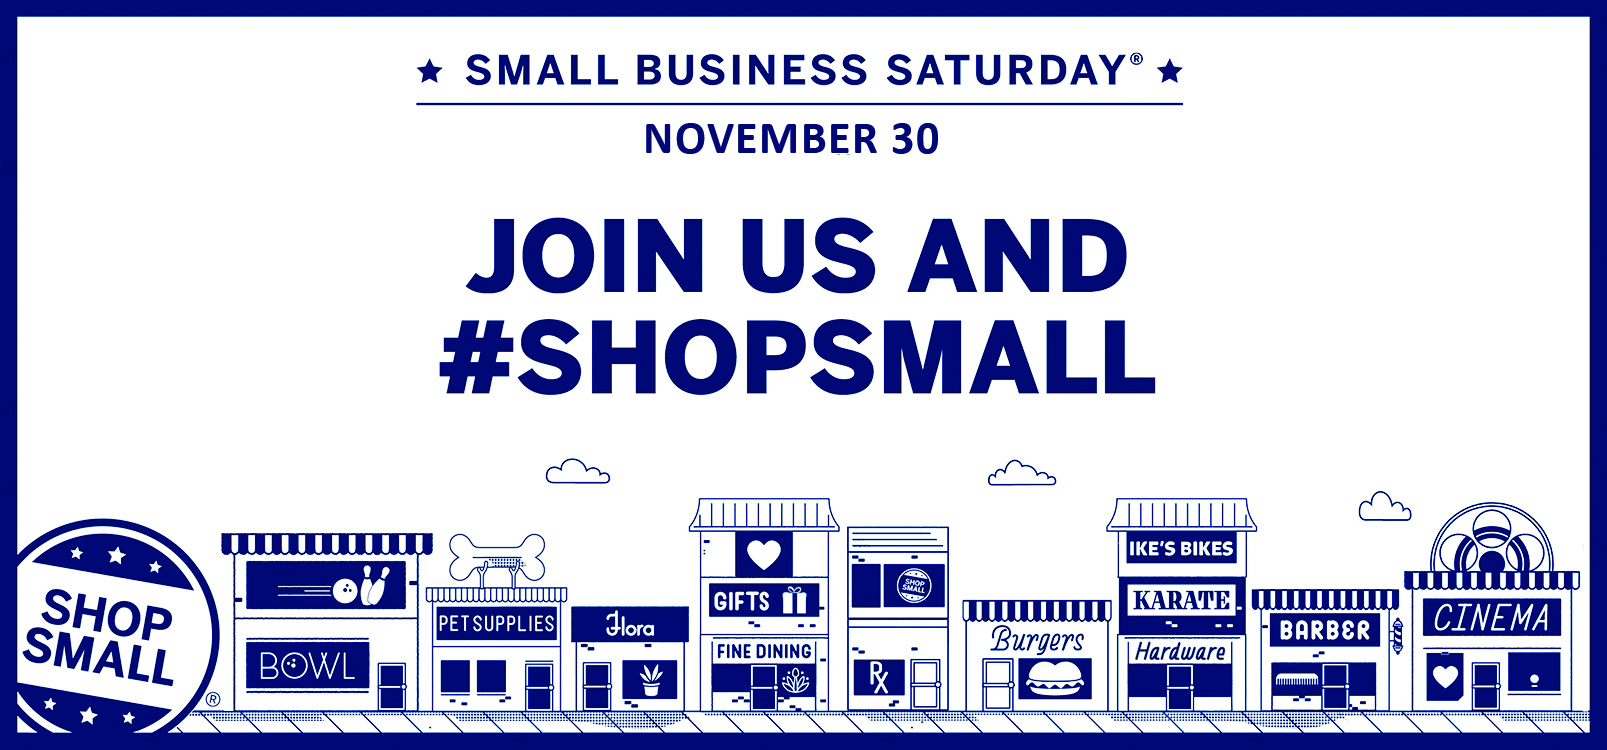 Small Business Saturday 2019